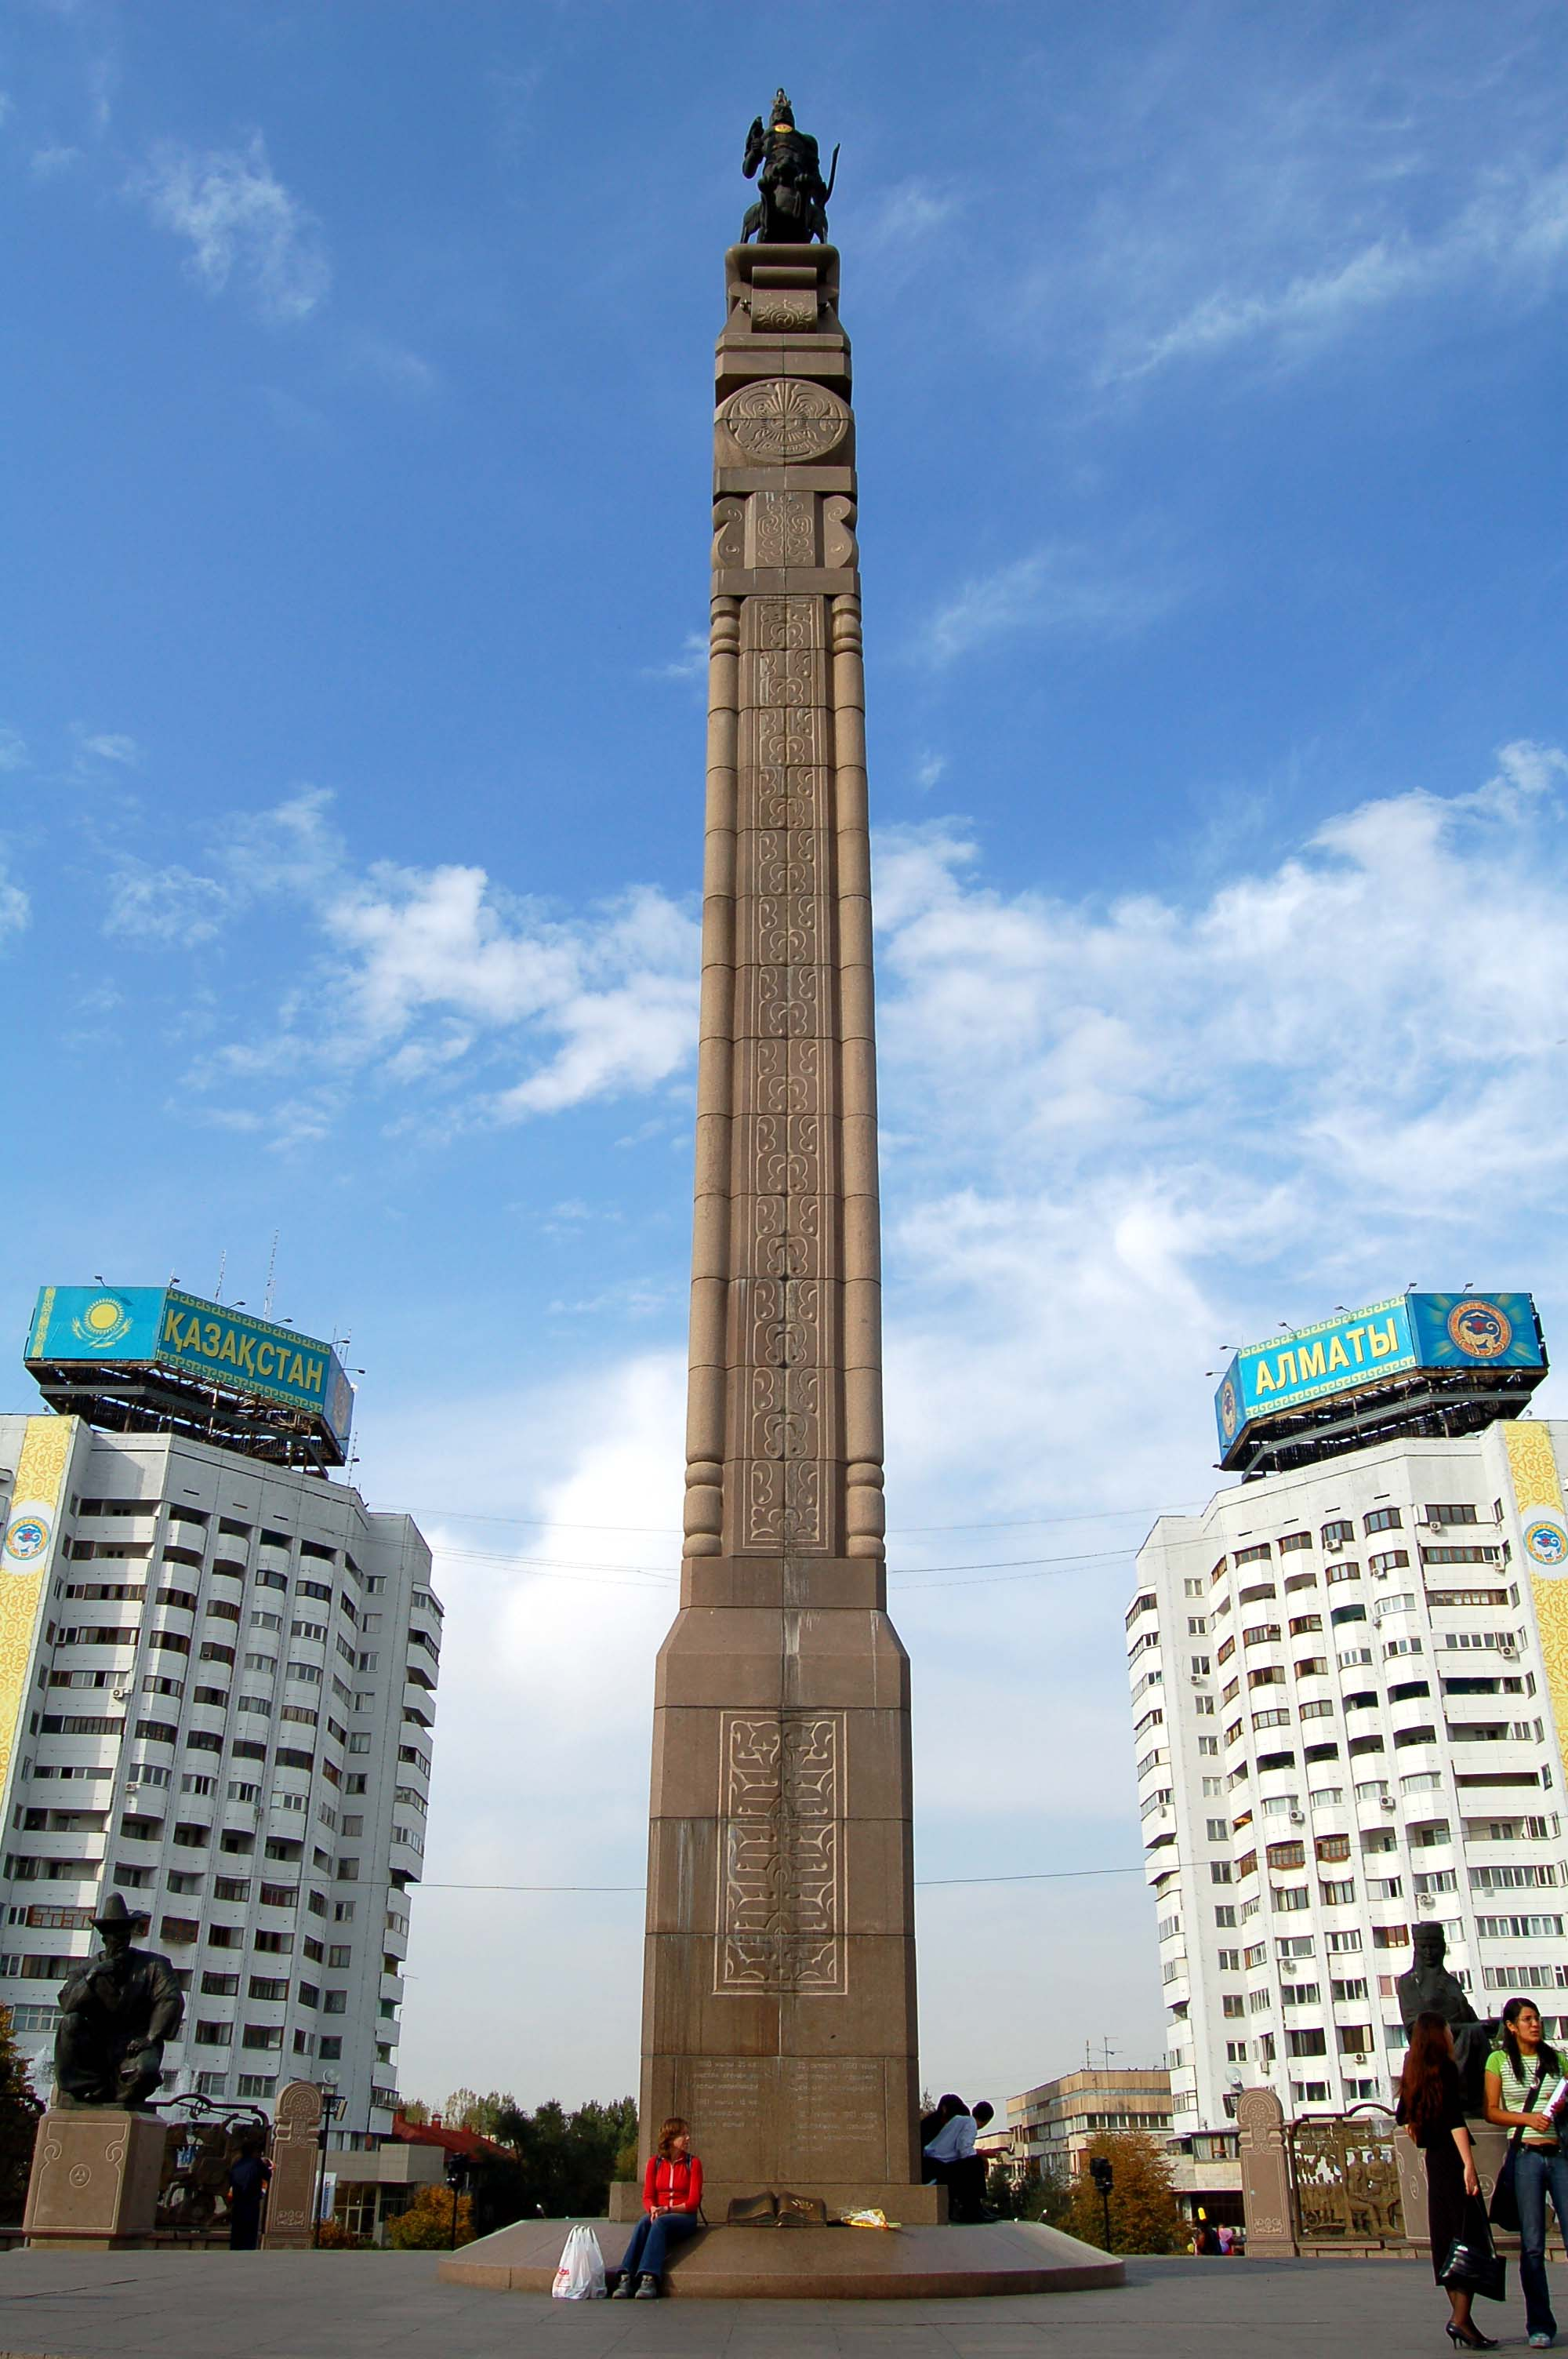 The Monument to Independence in Republic Square (Respublica Alangy).